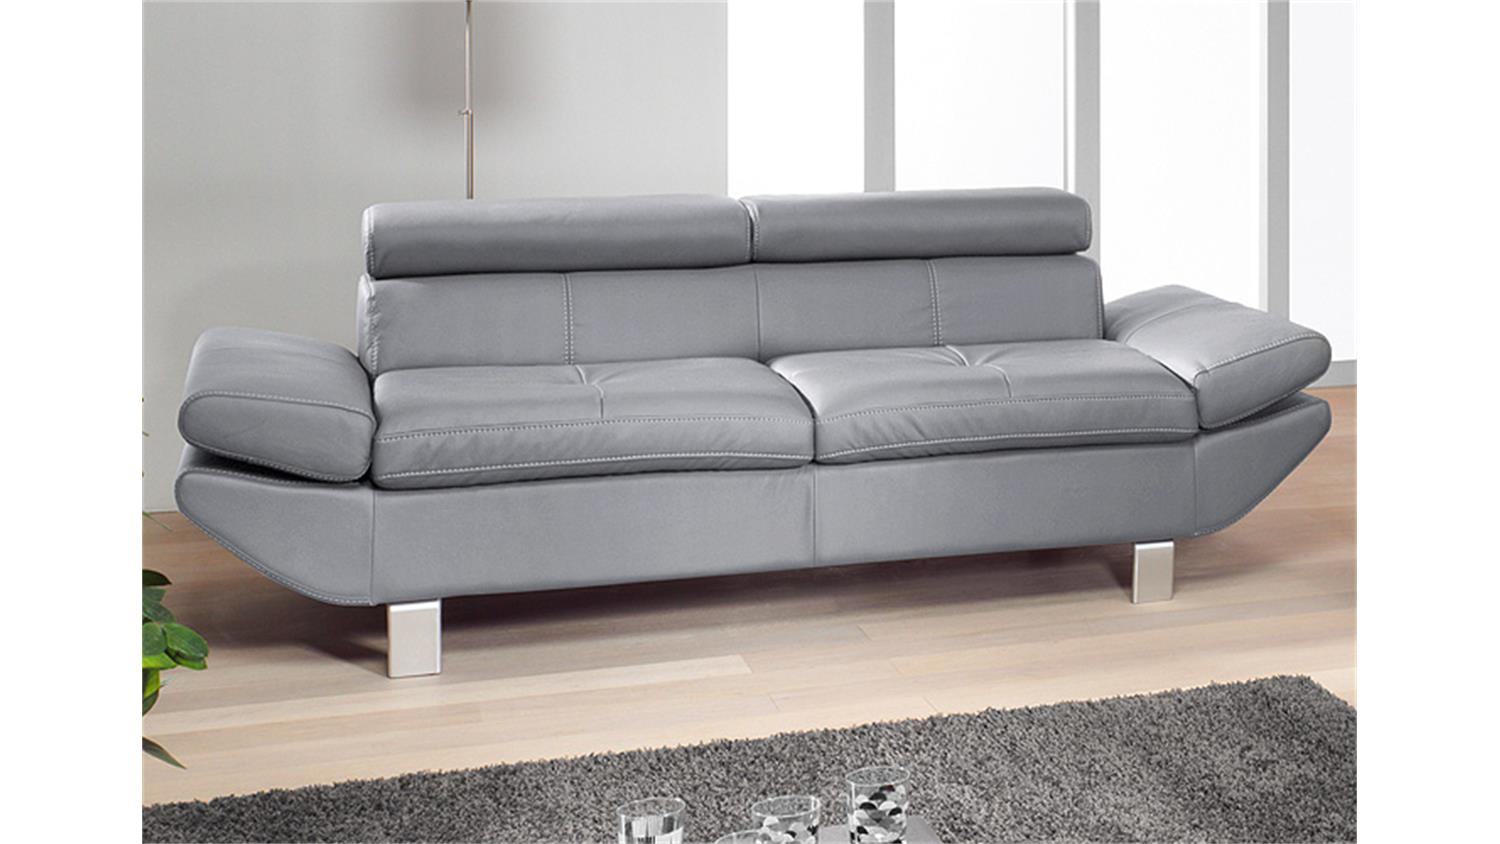 Sofa Mit Recamiere Best Of Ikea Canape Kivik 2 Places Full Hd 2 Er Sofa Latest With 2 Er Sofa Excellent Ikea Canape